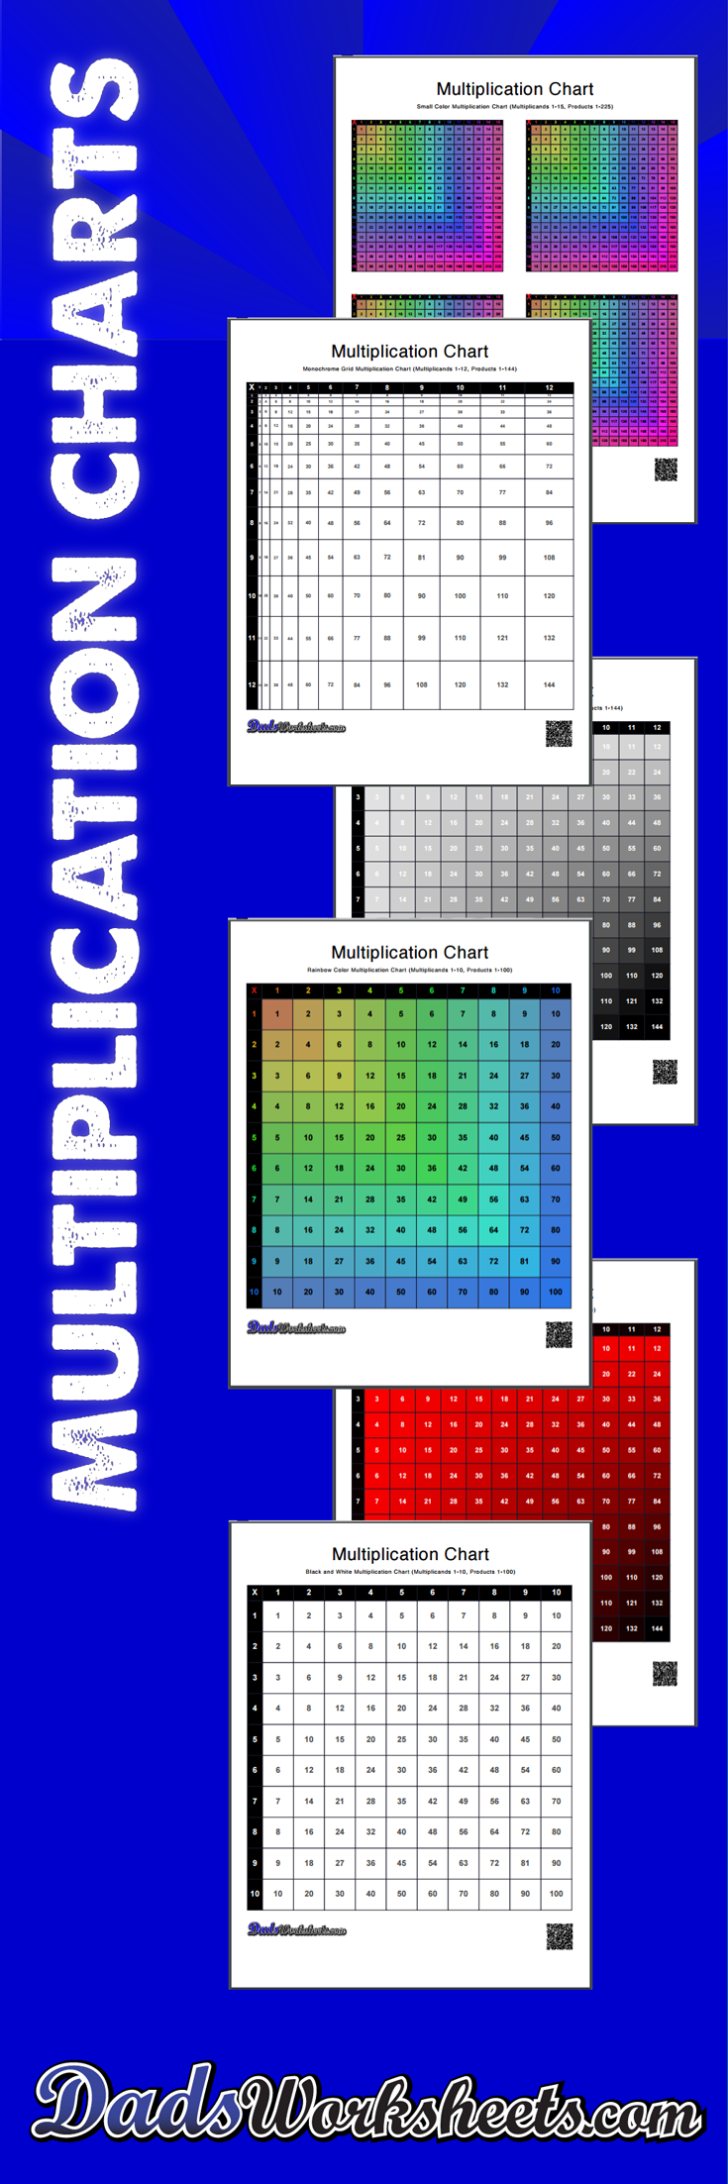 Multiplication Chart All The Way To 12